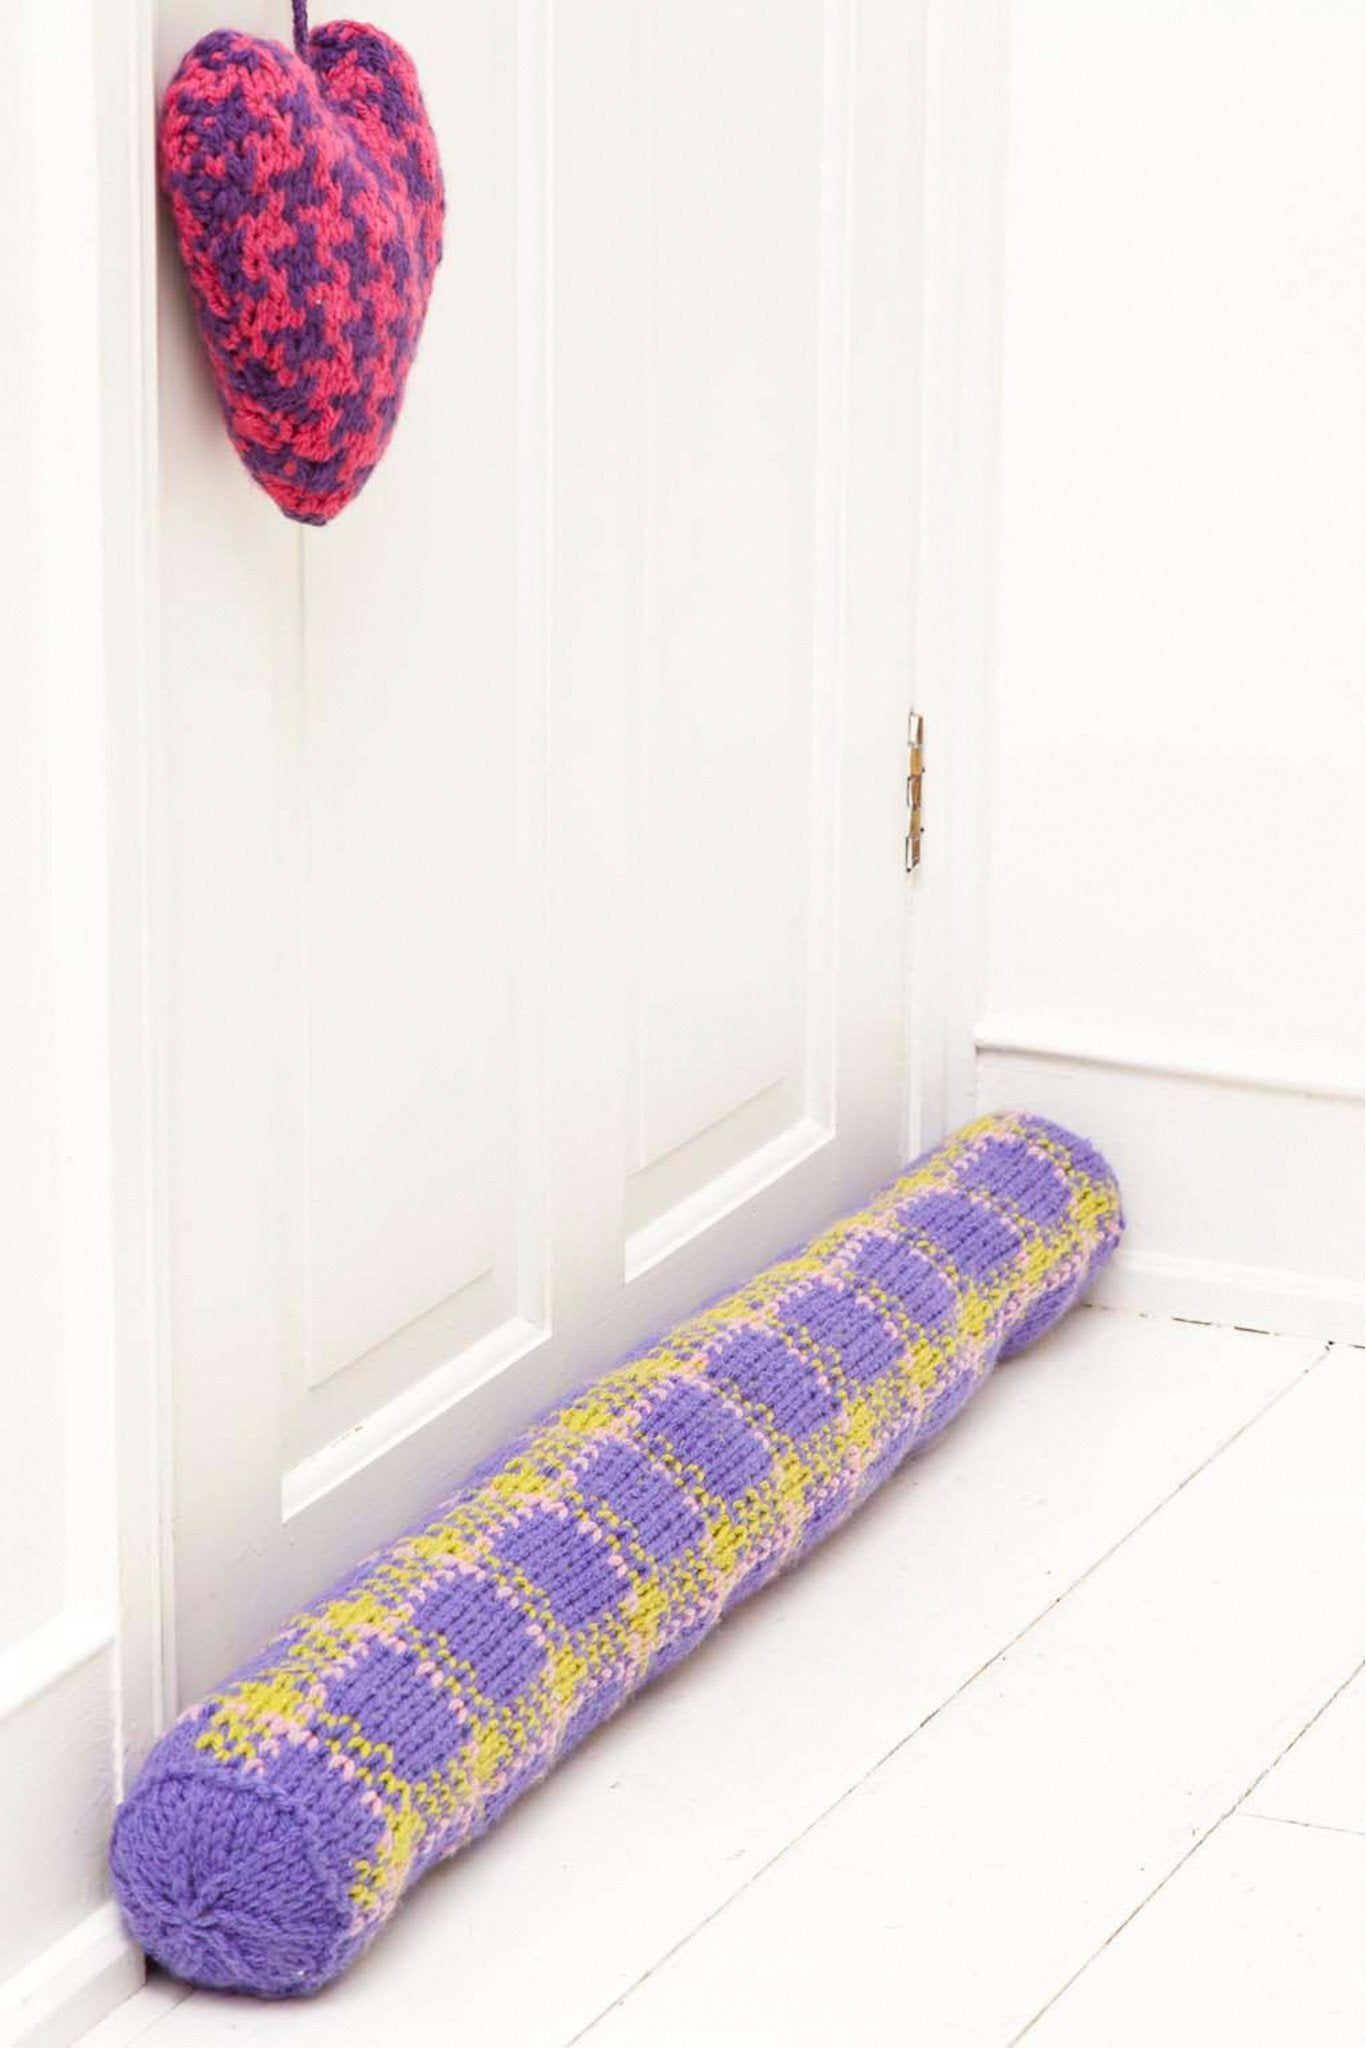 Door Stop Draught Excluder And Sachet Knitting Patterns The